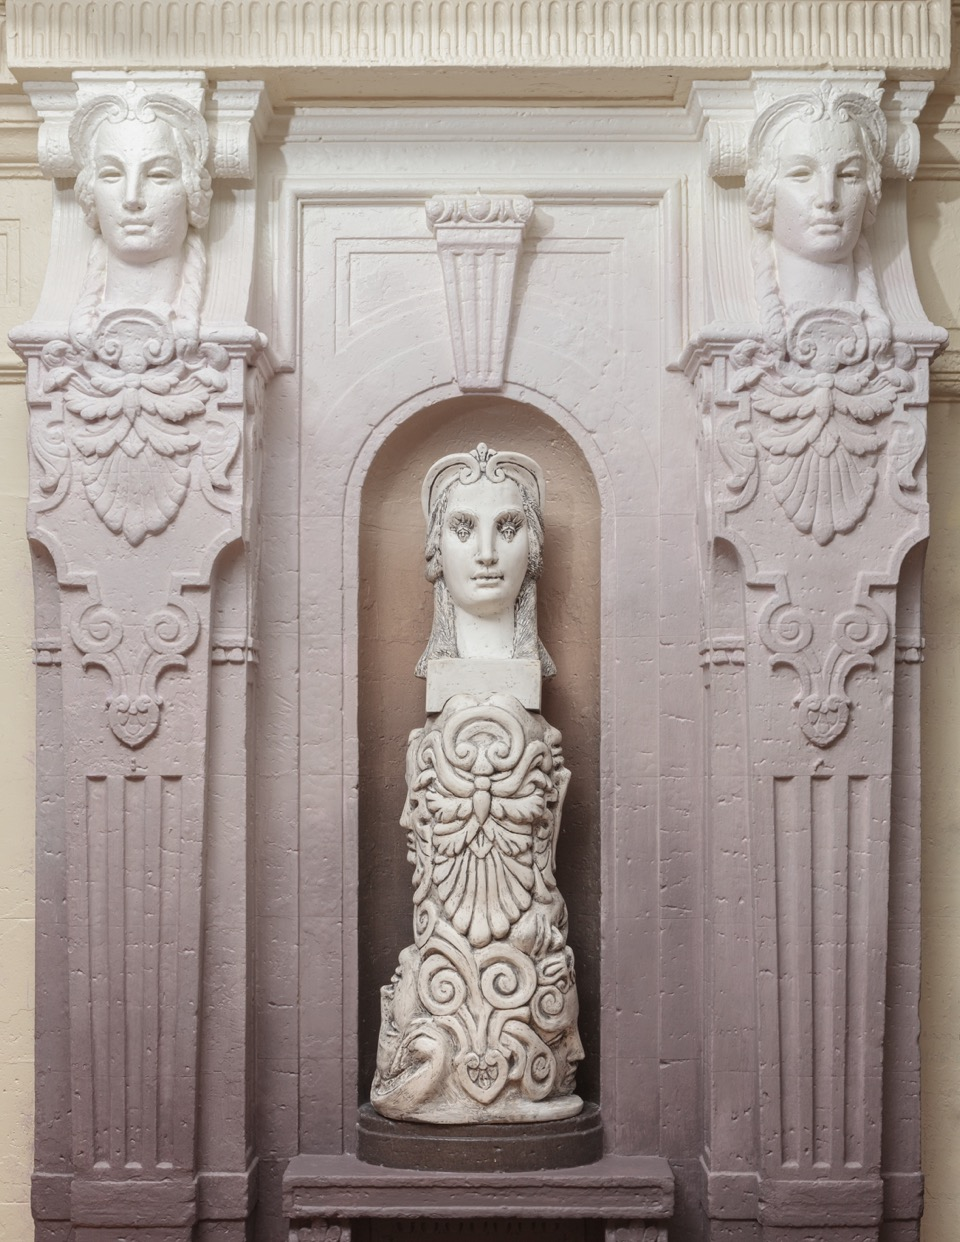 """Liberty Eyes , installation view. Leslie Fry. 2018. Reinforced plaster, ink, steel.49"""" x 18"""" x 10½""""Freehand New York, NYC, Freehand/Bard Art Commission.Photo by Jeanette May, courtesy of the artist."""